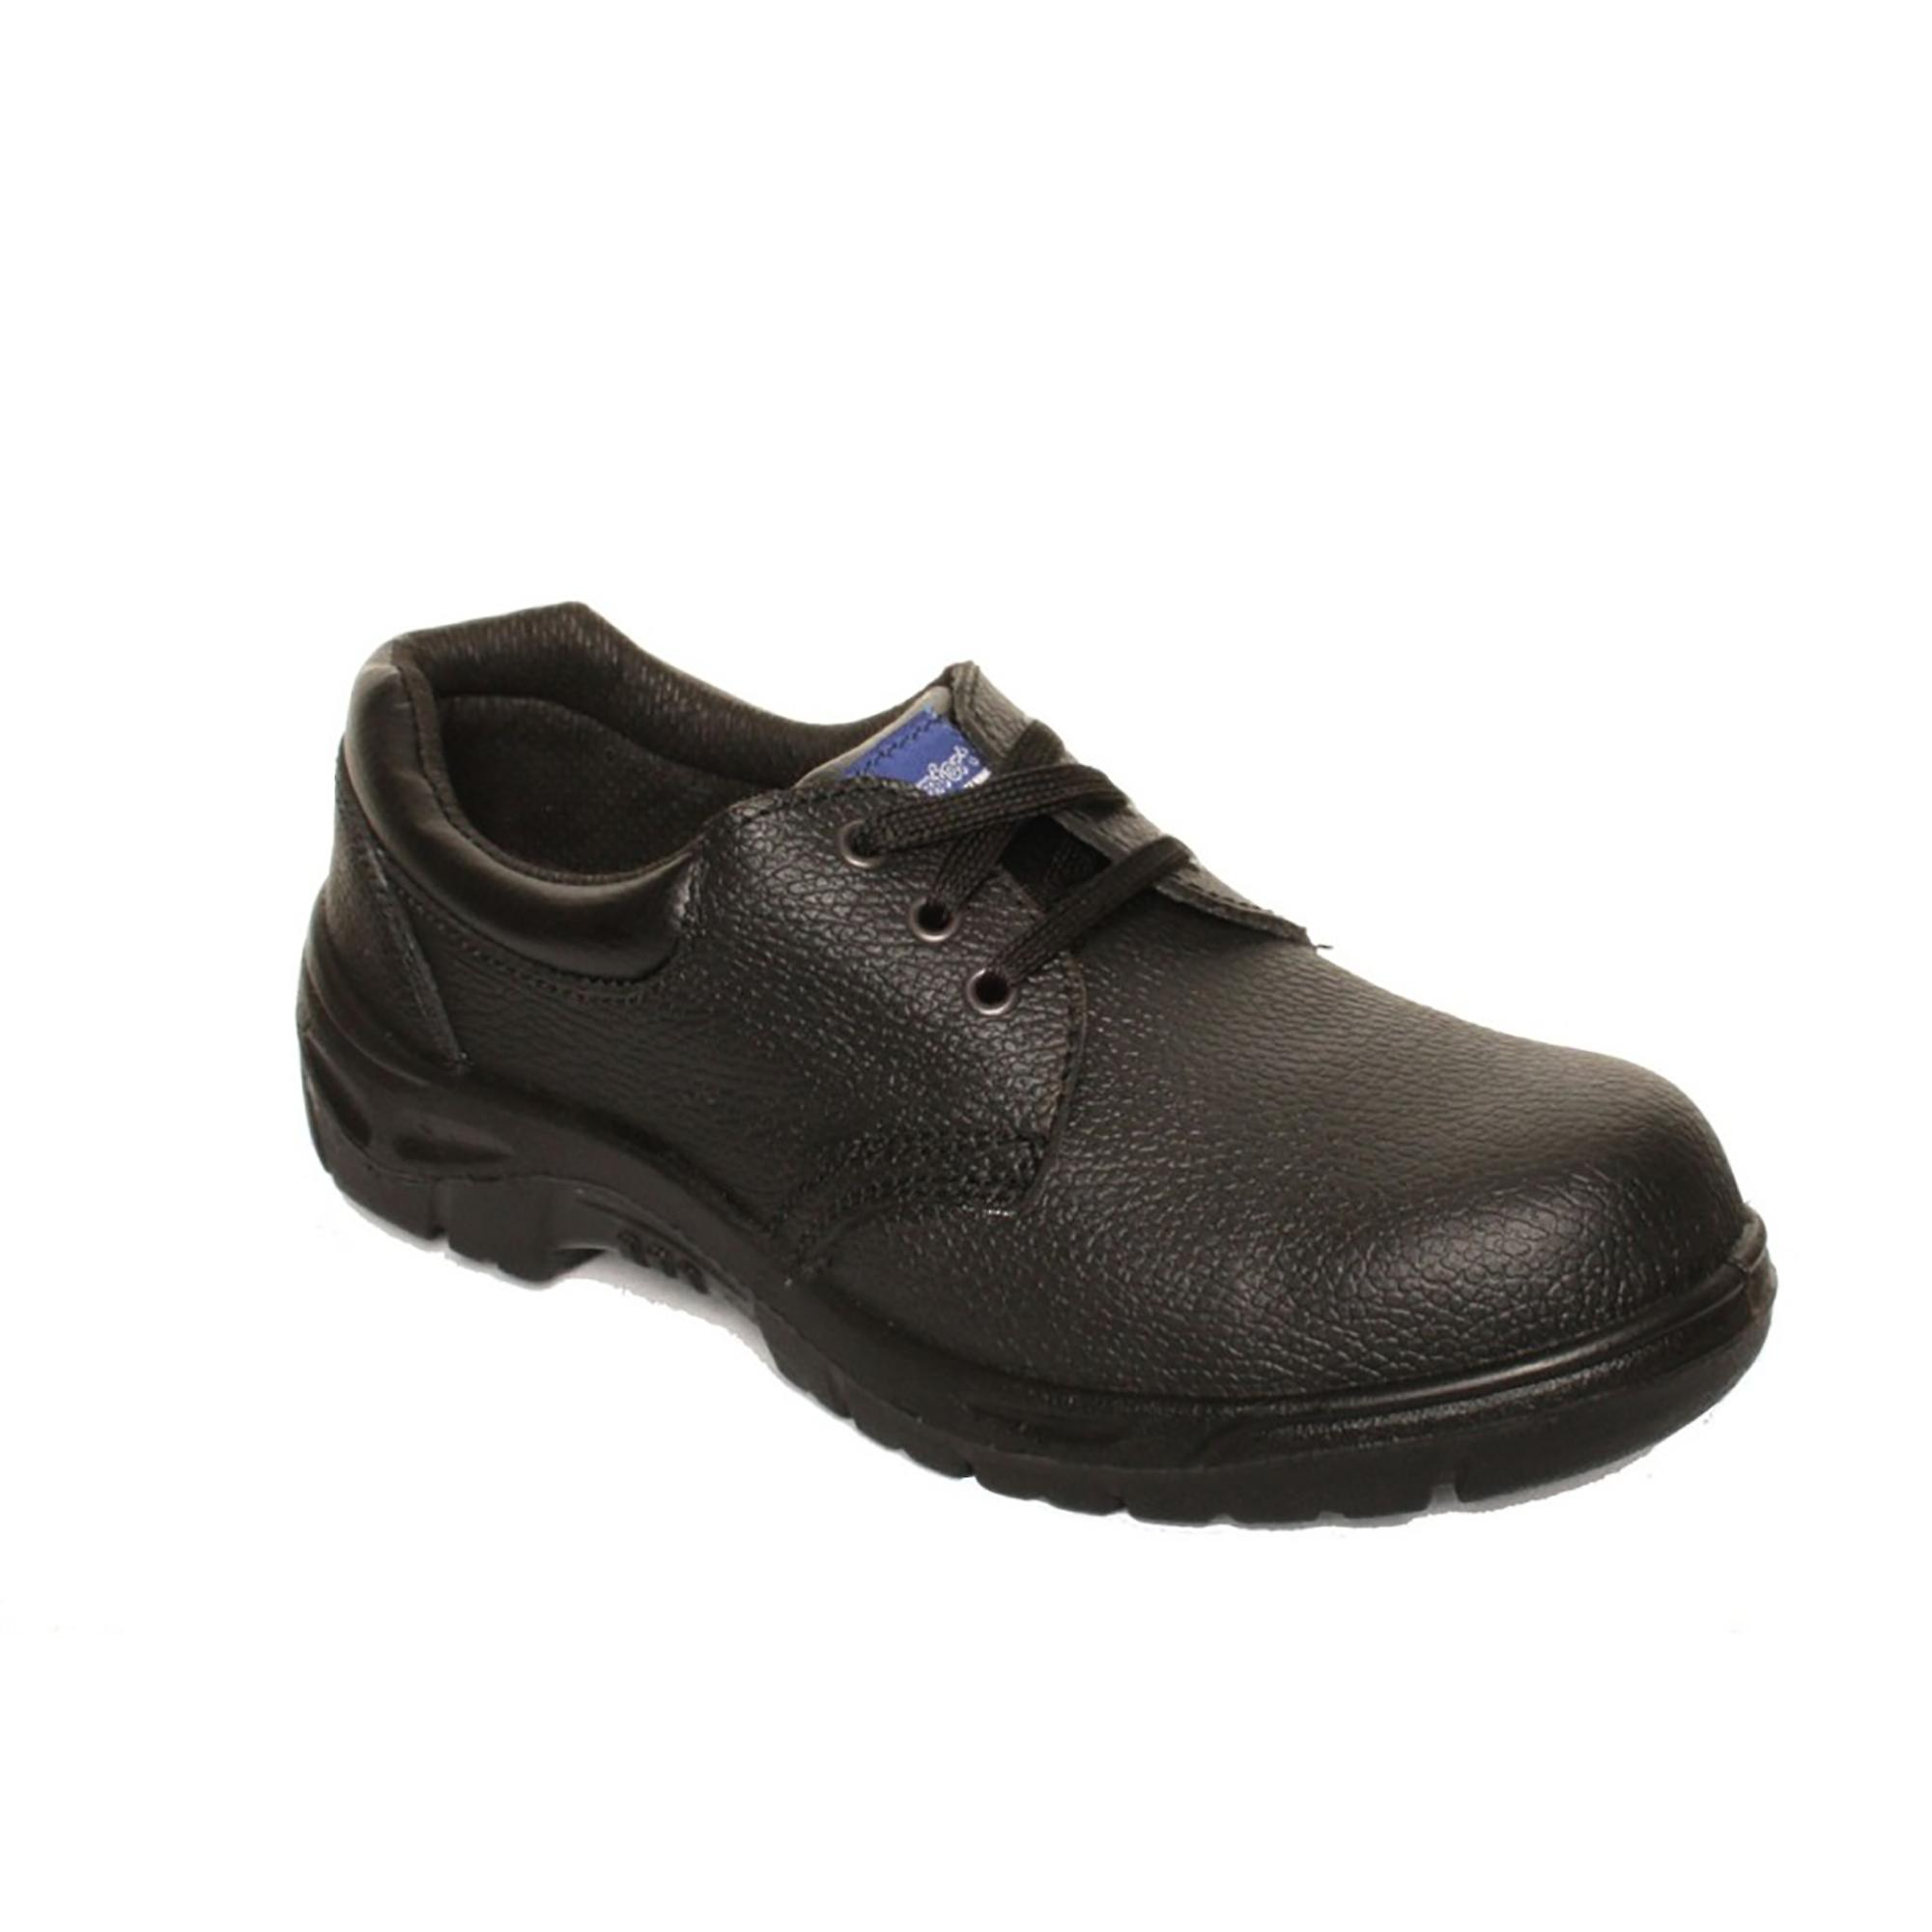 84544f34e5d Dennys Unisex COMFORT GRIP Steel Toe Cap Catering Safety Shoe / Footwear